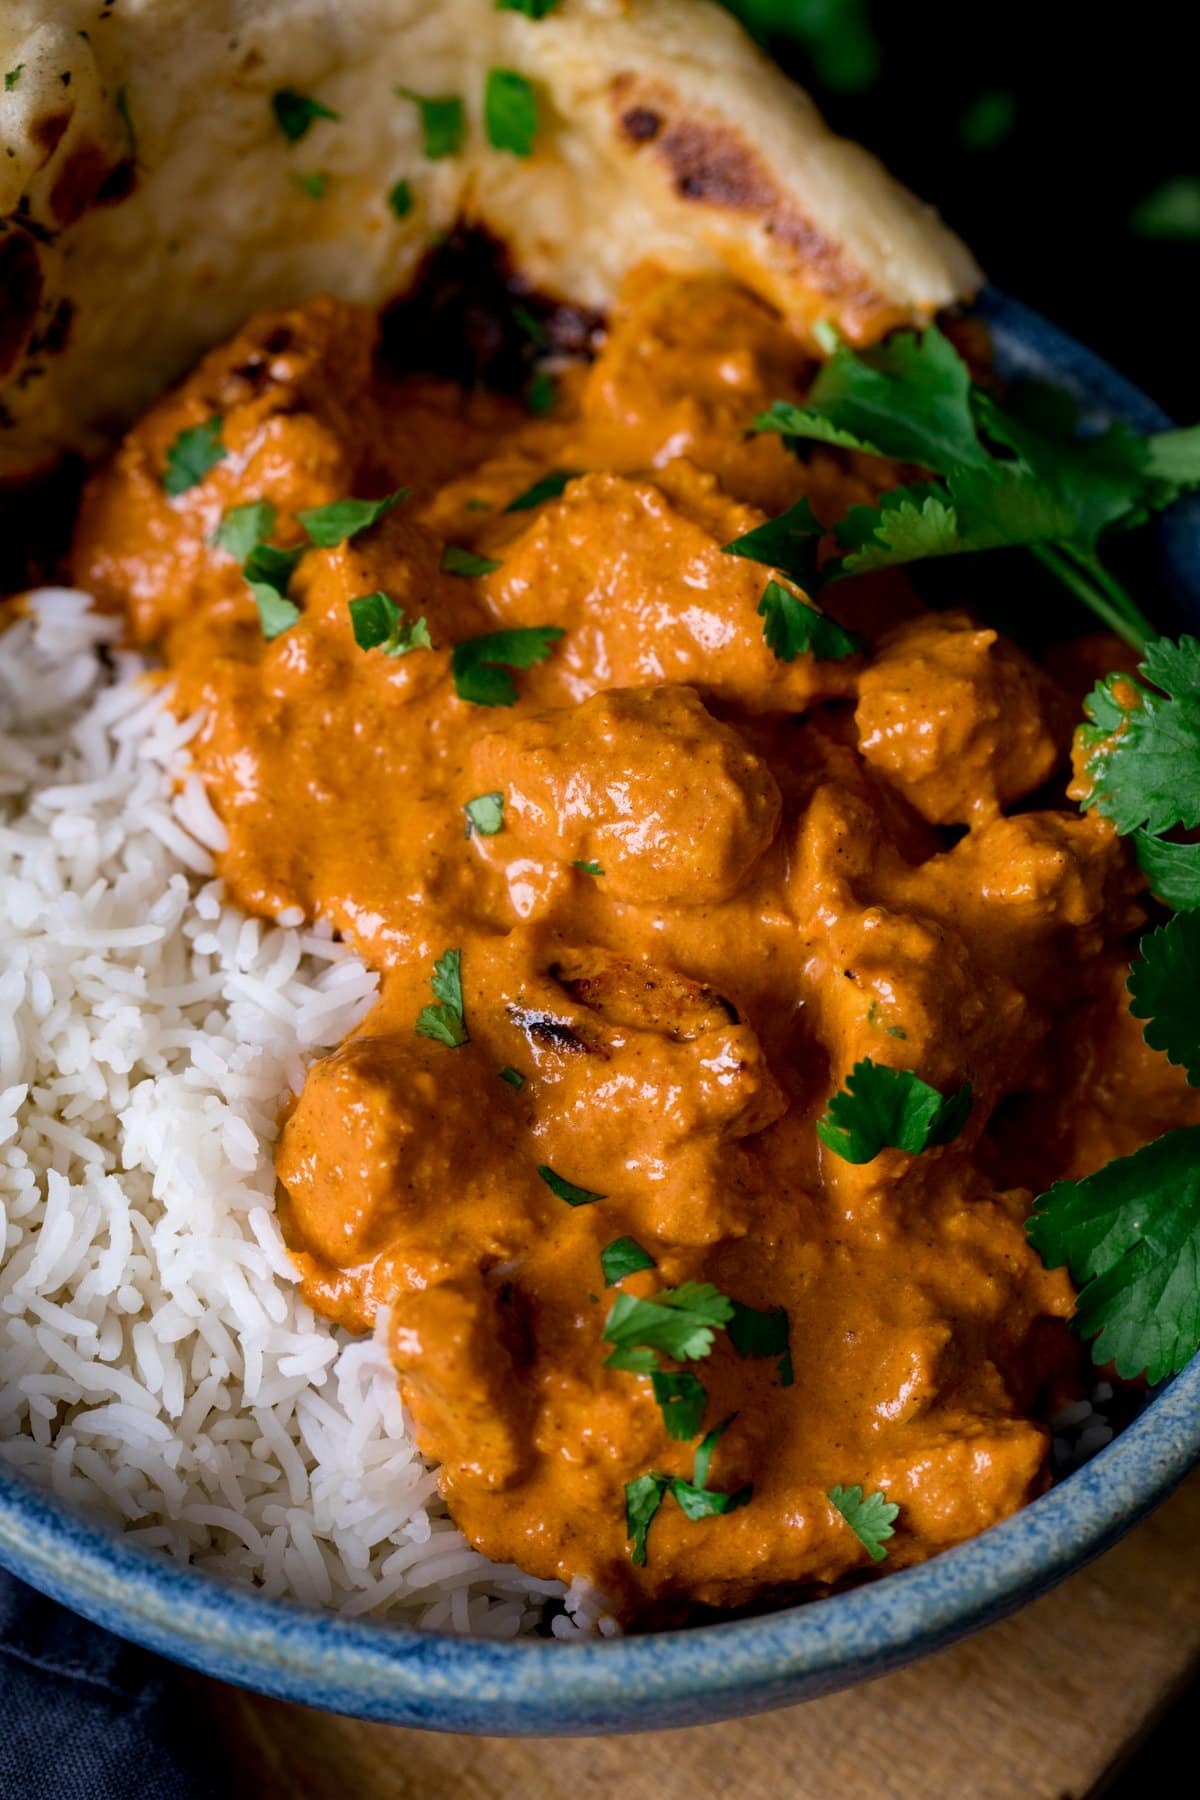 Butter chicken in a bowl with rice and naan bread.